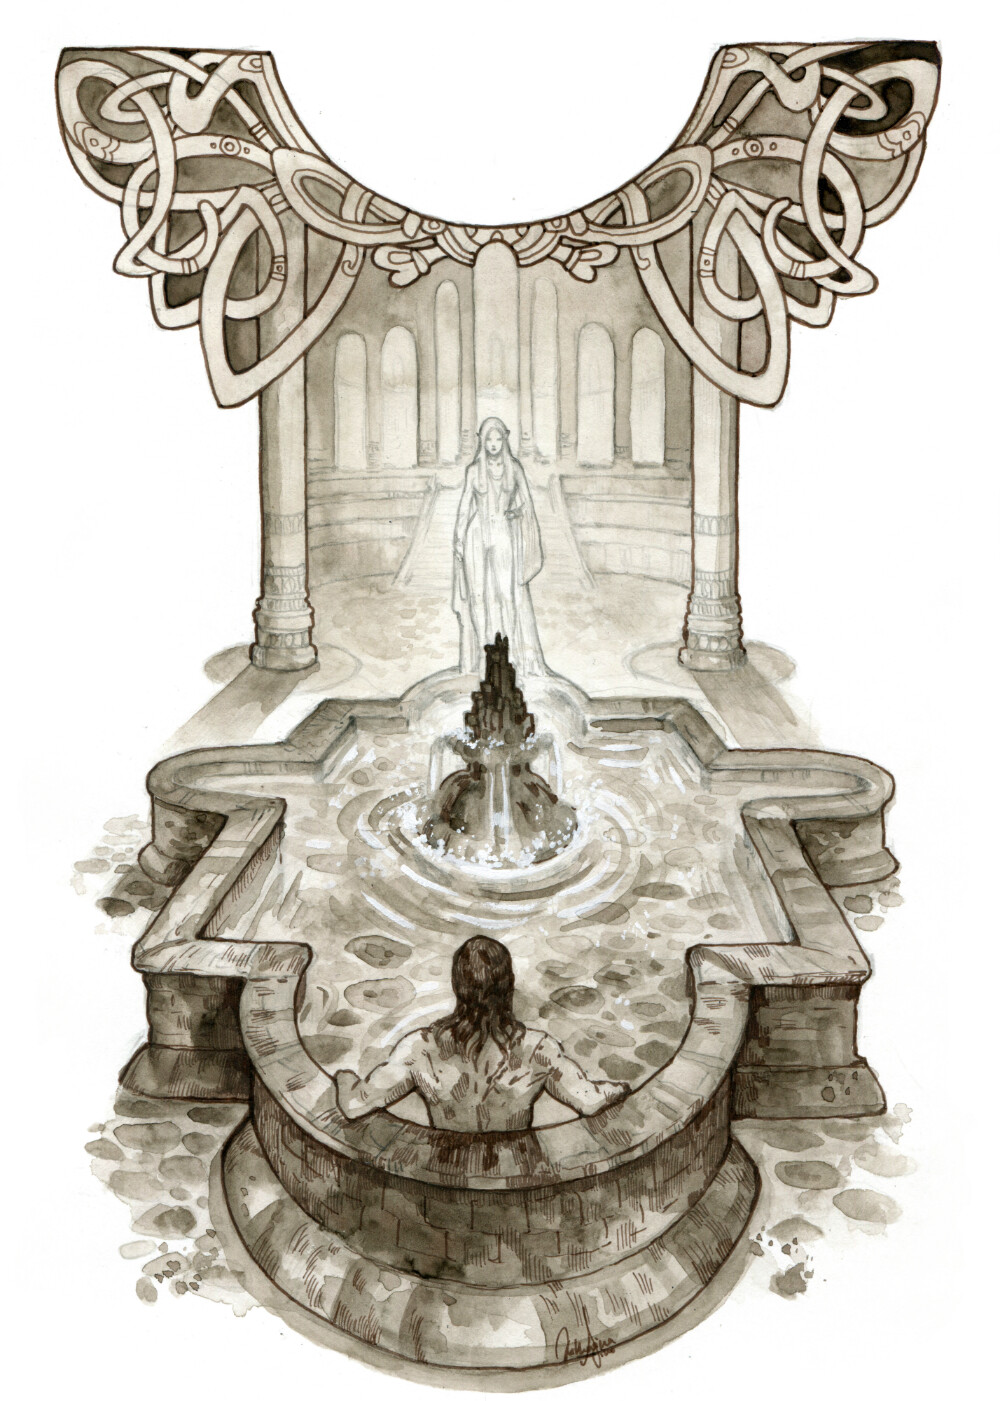 Beorn and Pardona at the well